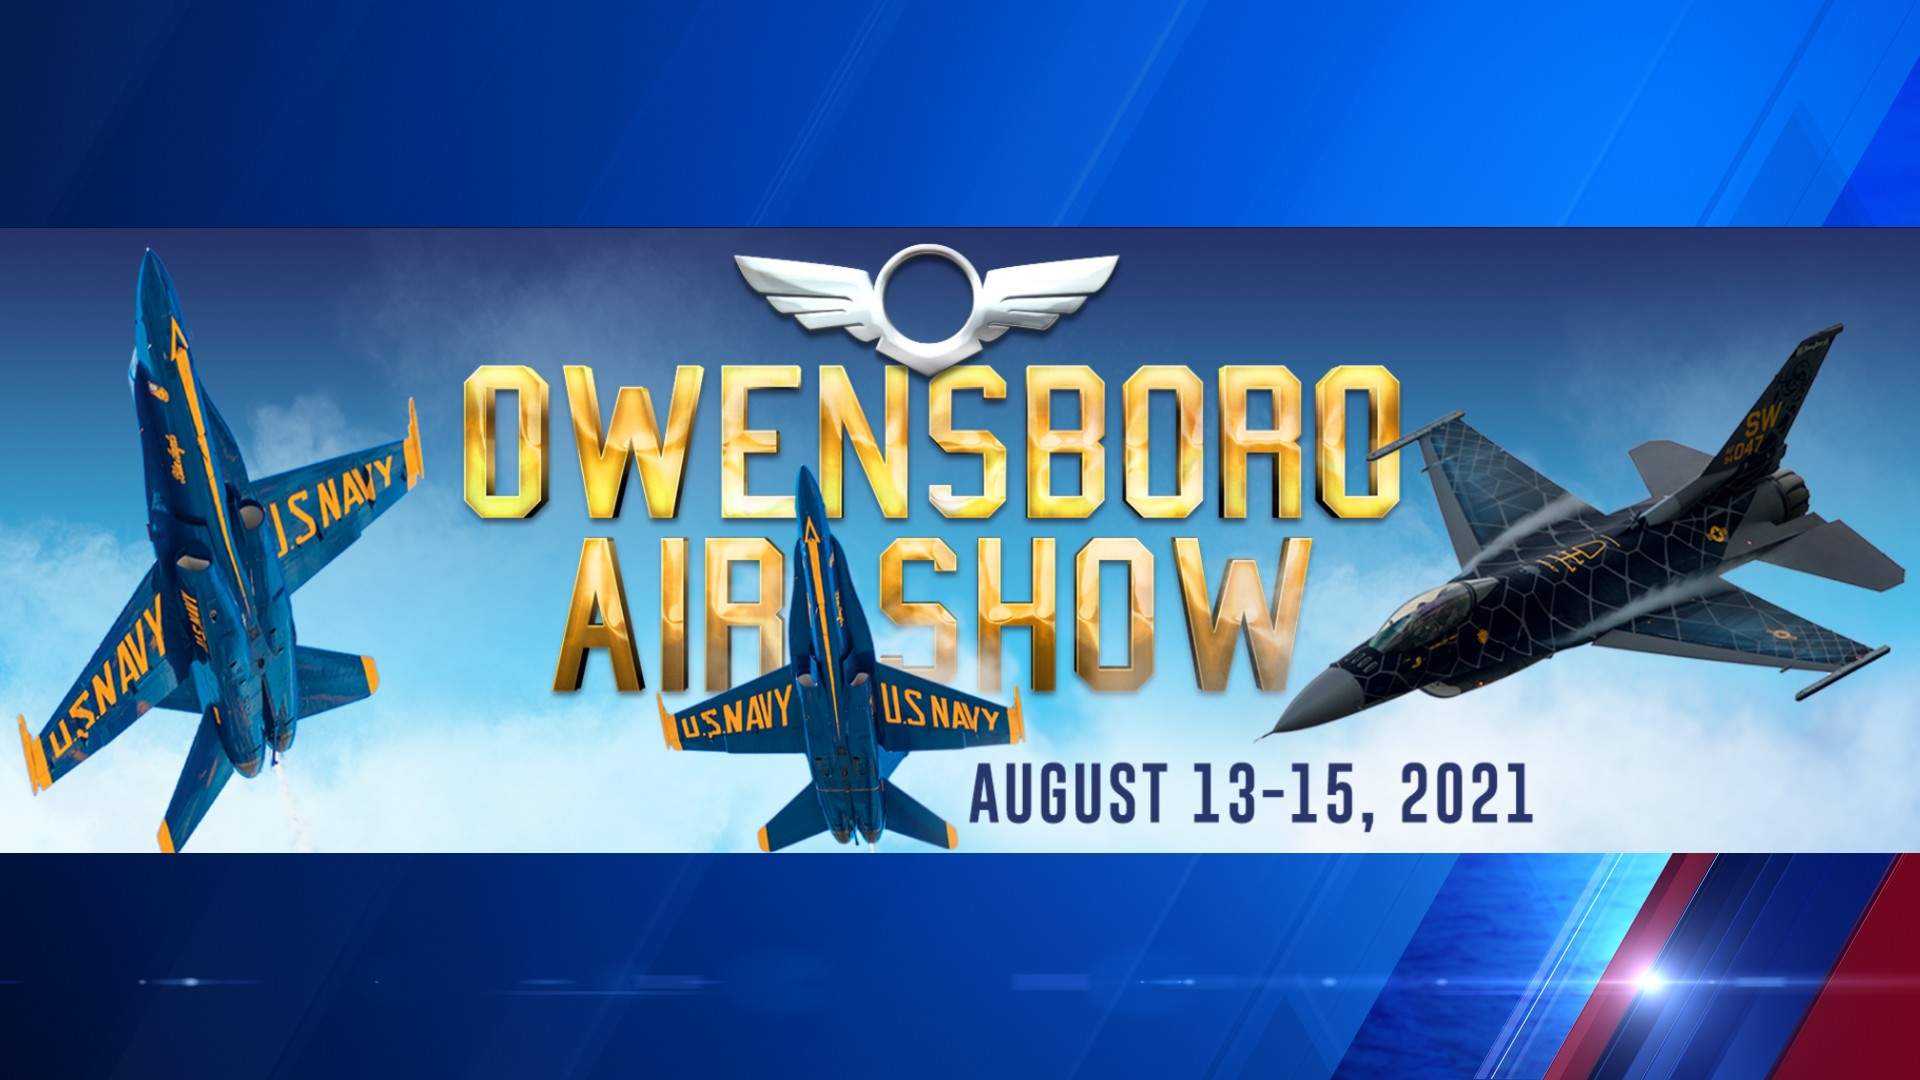 Owensboro Air Show 2021